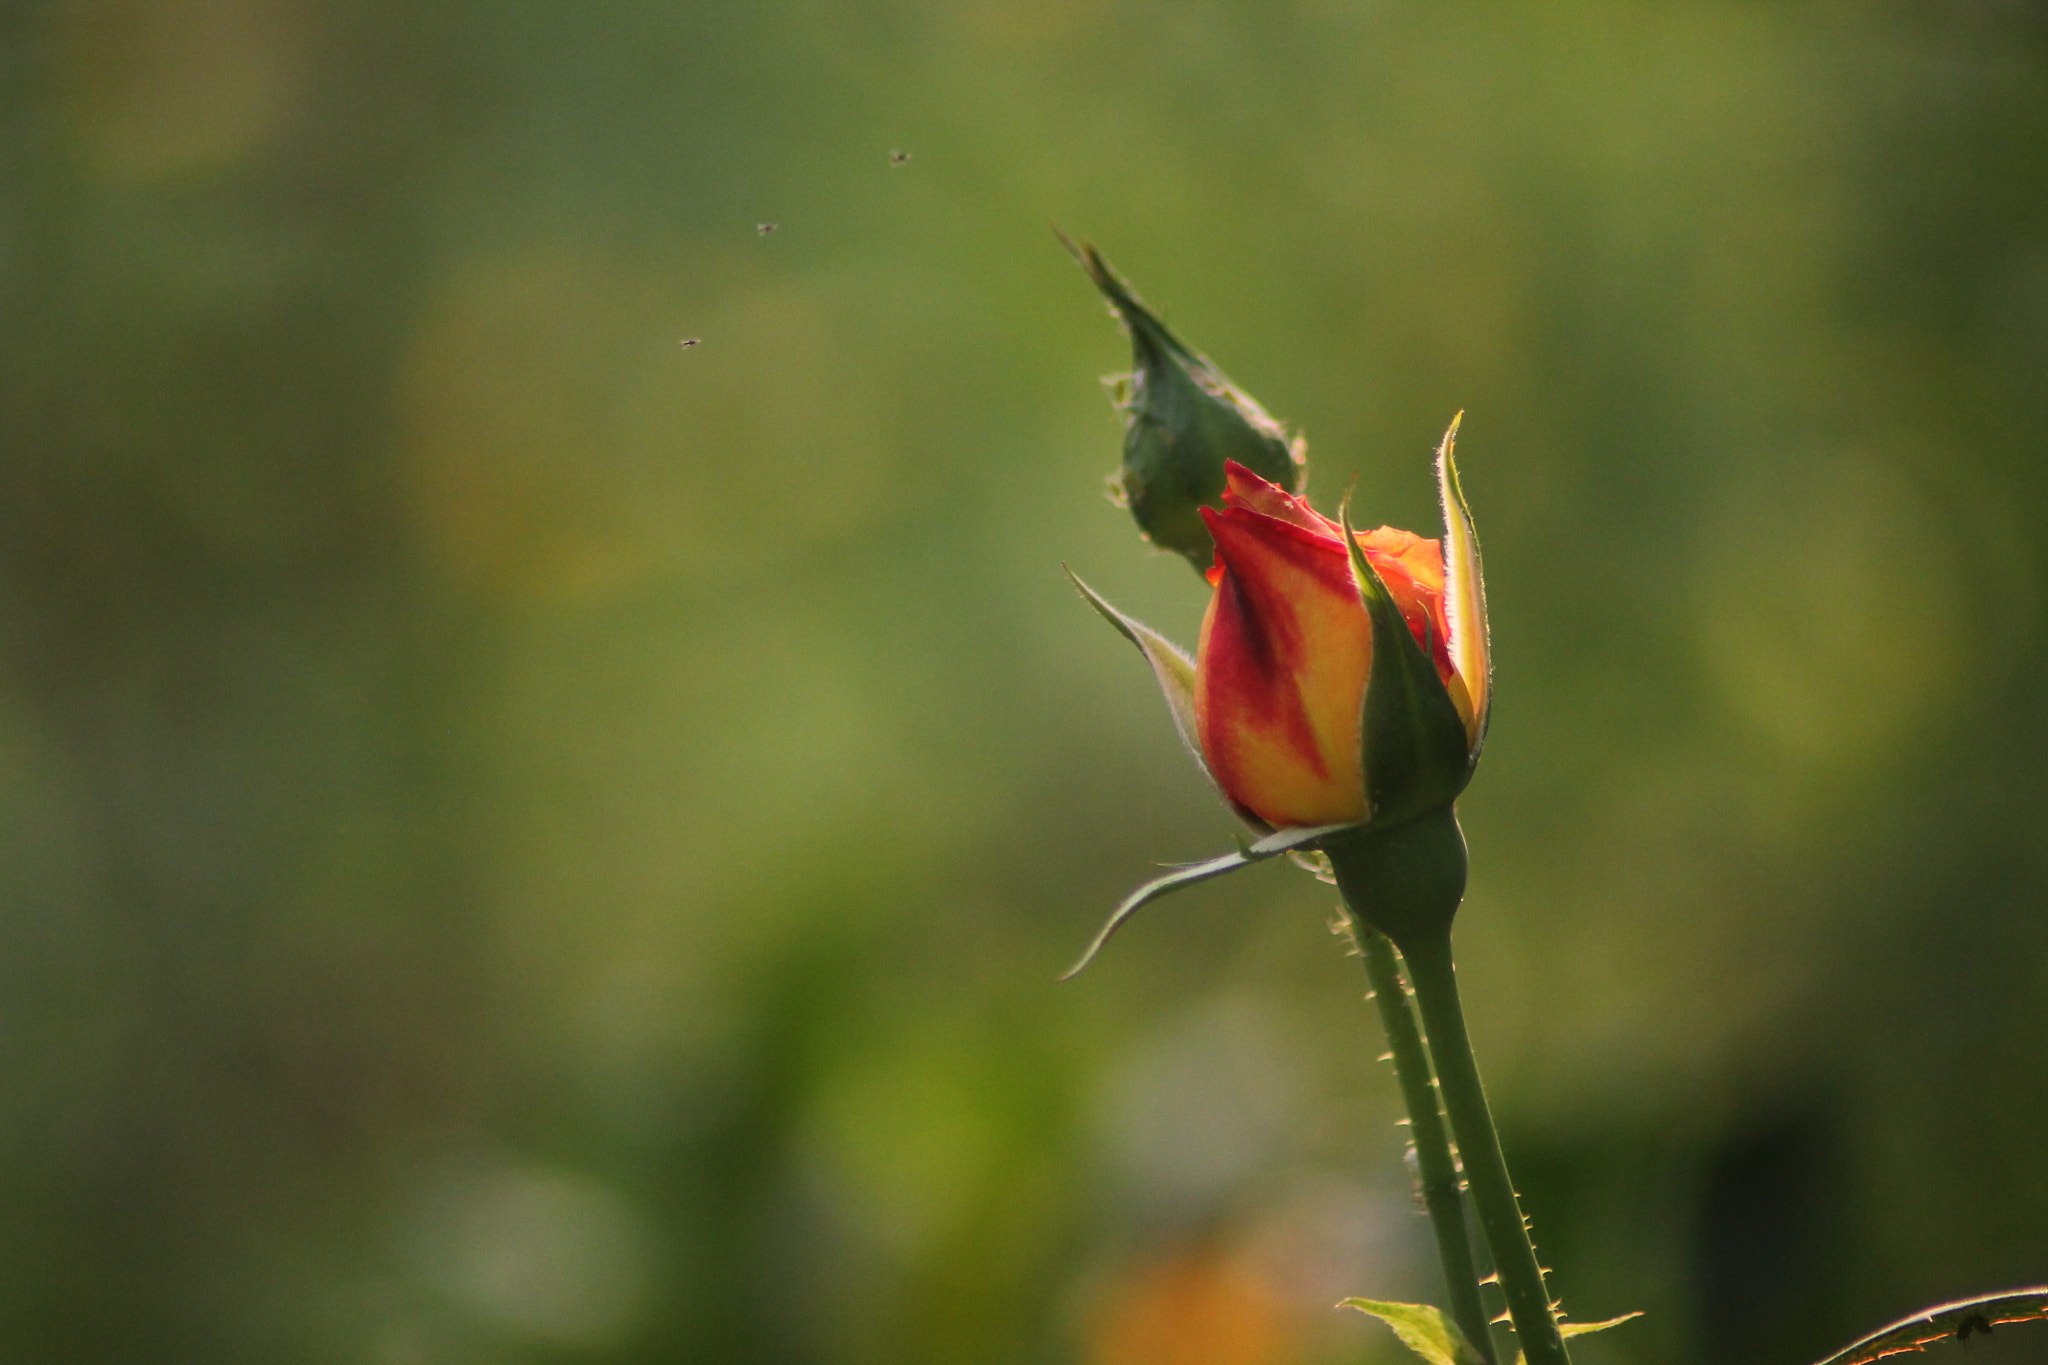 Photograph Rose bud by ashish pradhan on 500px